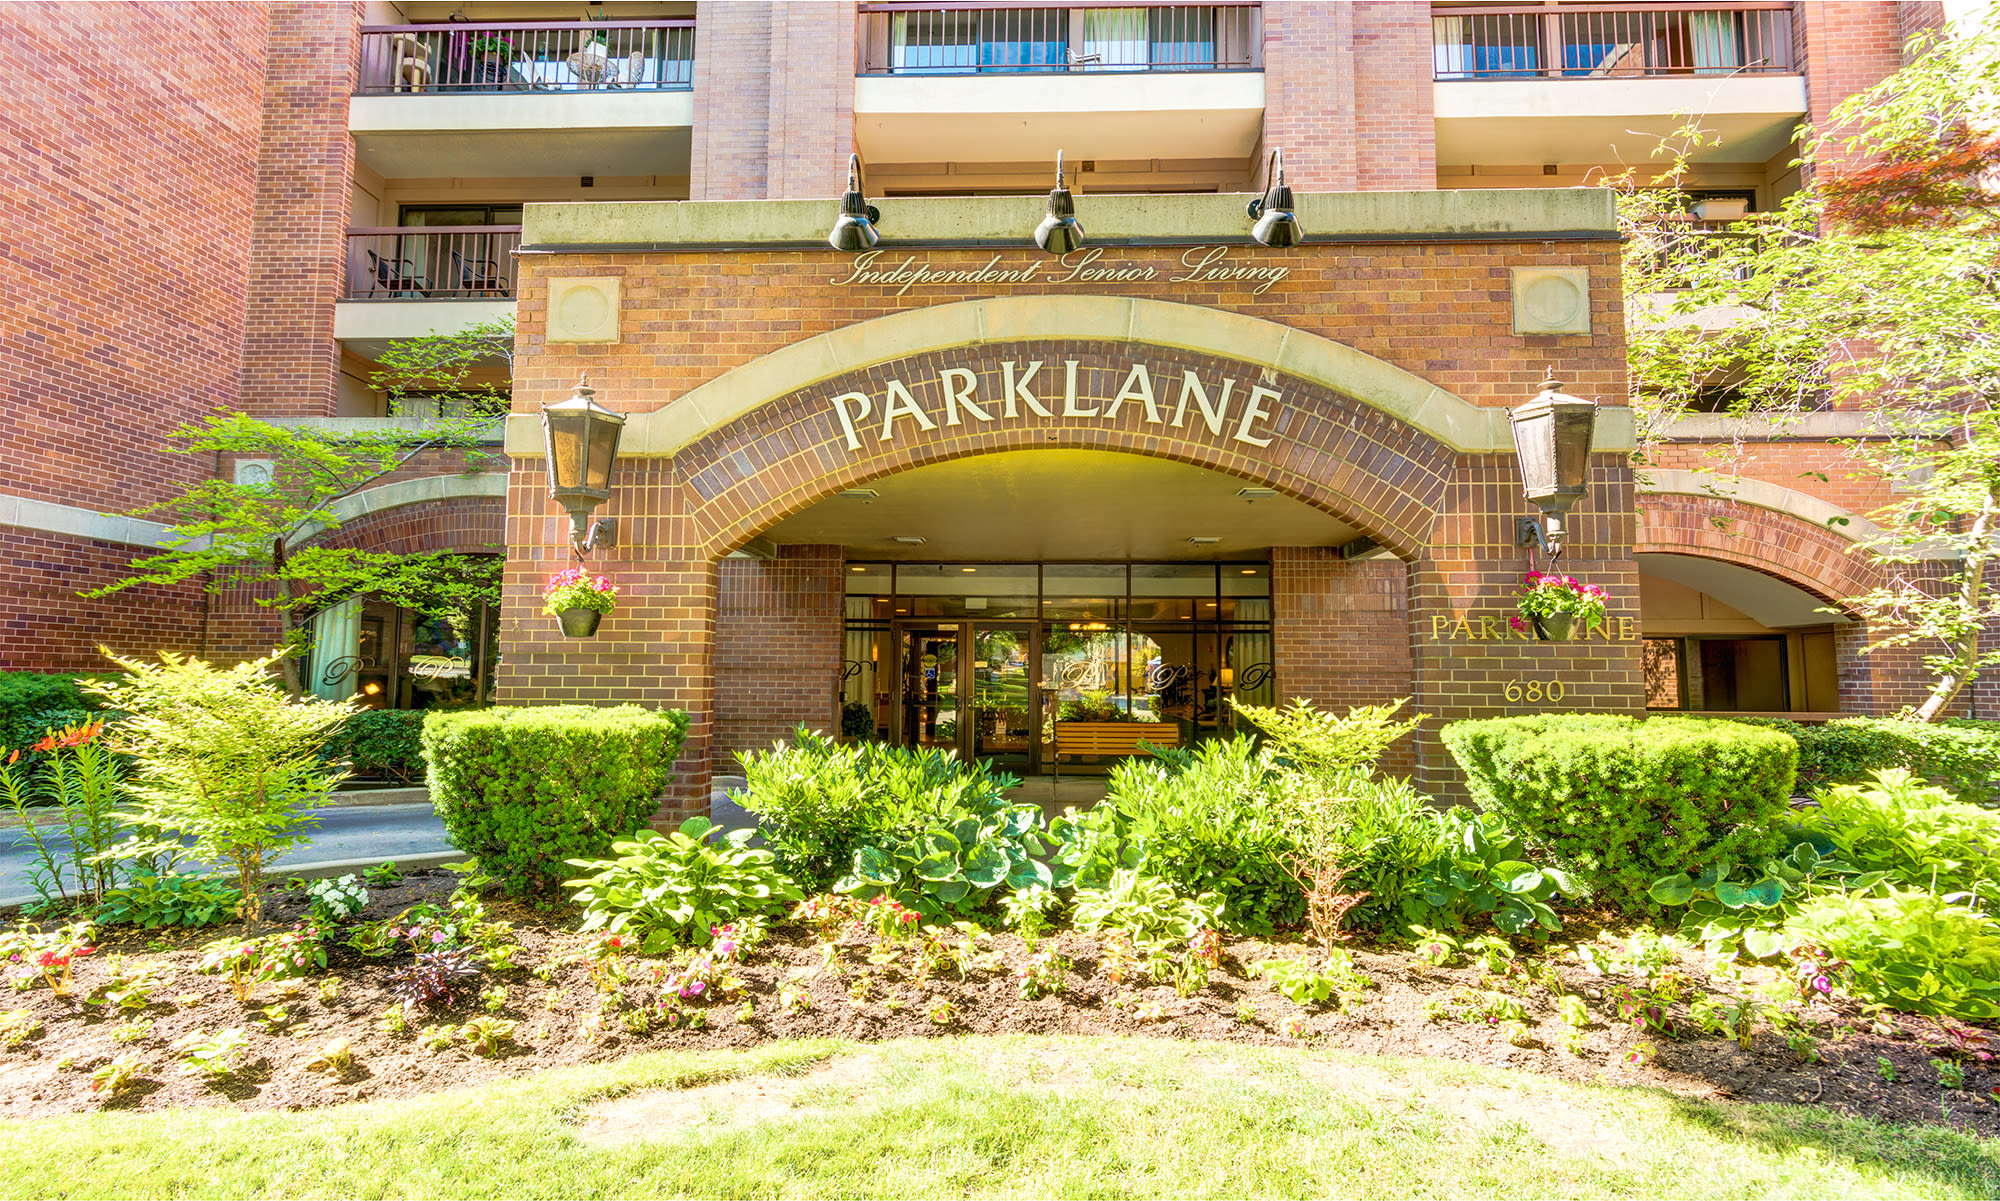 Senior living at The Wentworth at Parklane in Salt Lake City, Utah